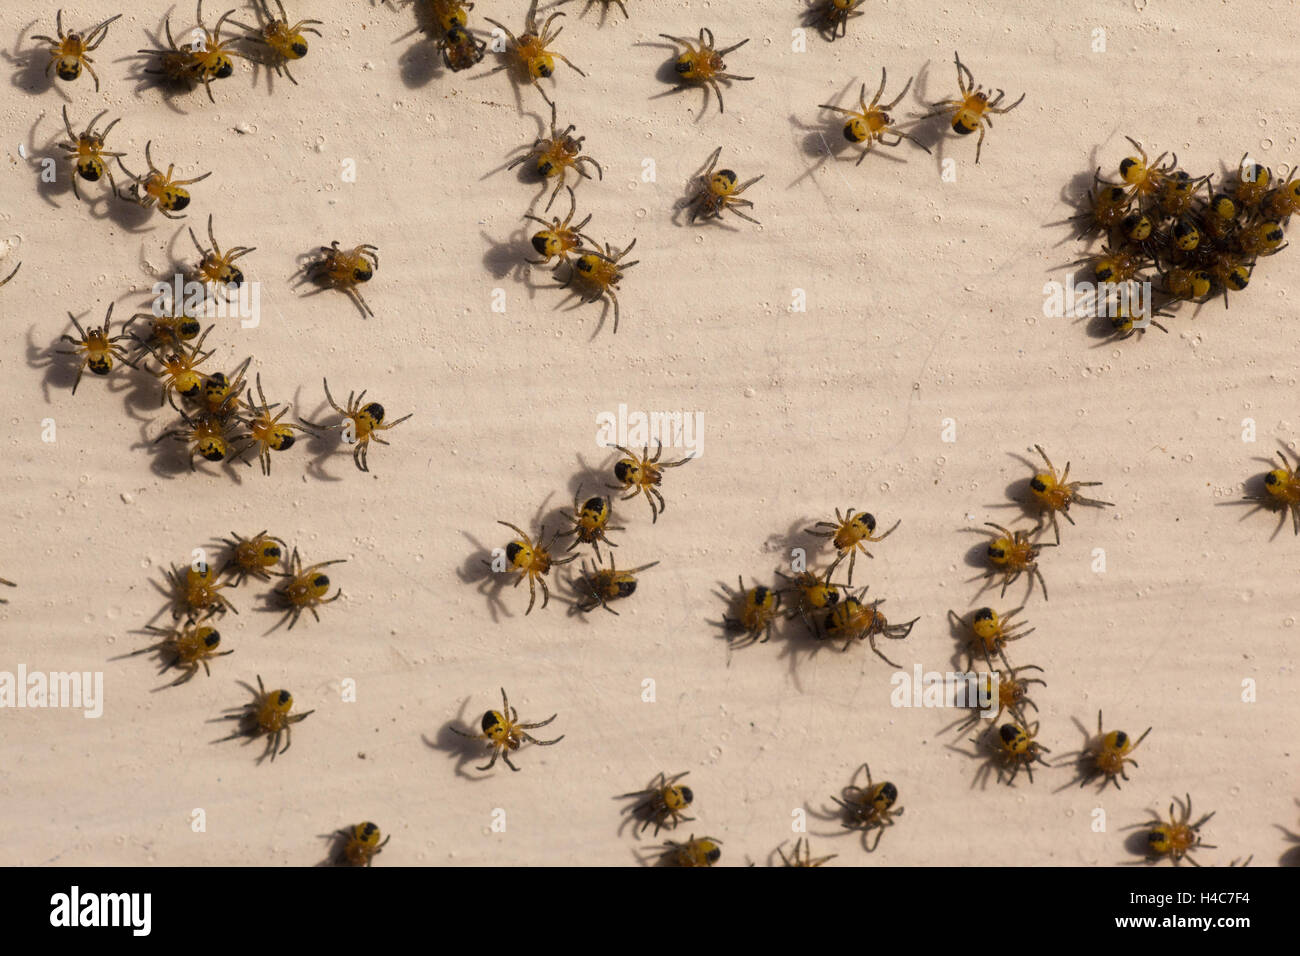 Baby spiders recently hatched on a window ledge. - Stock Image